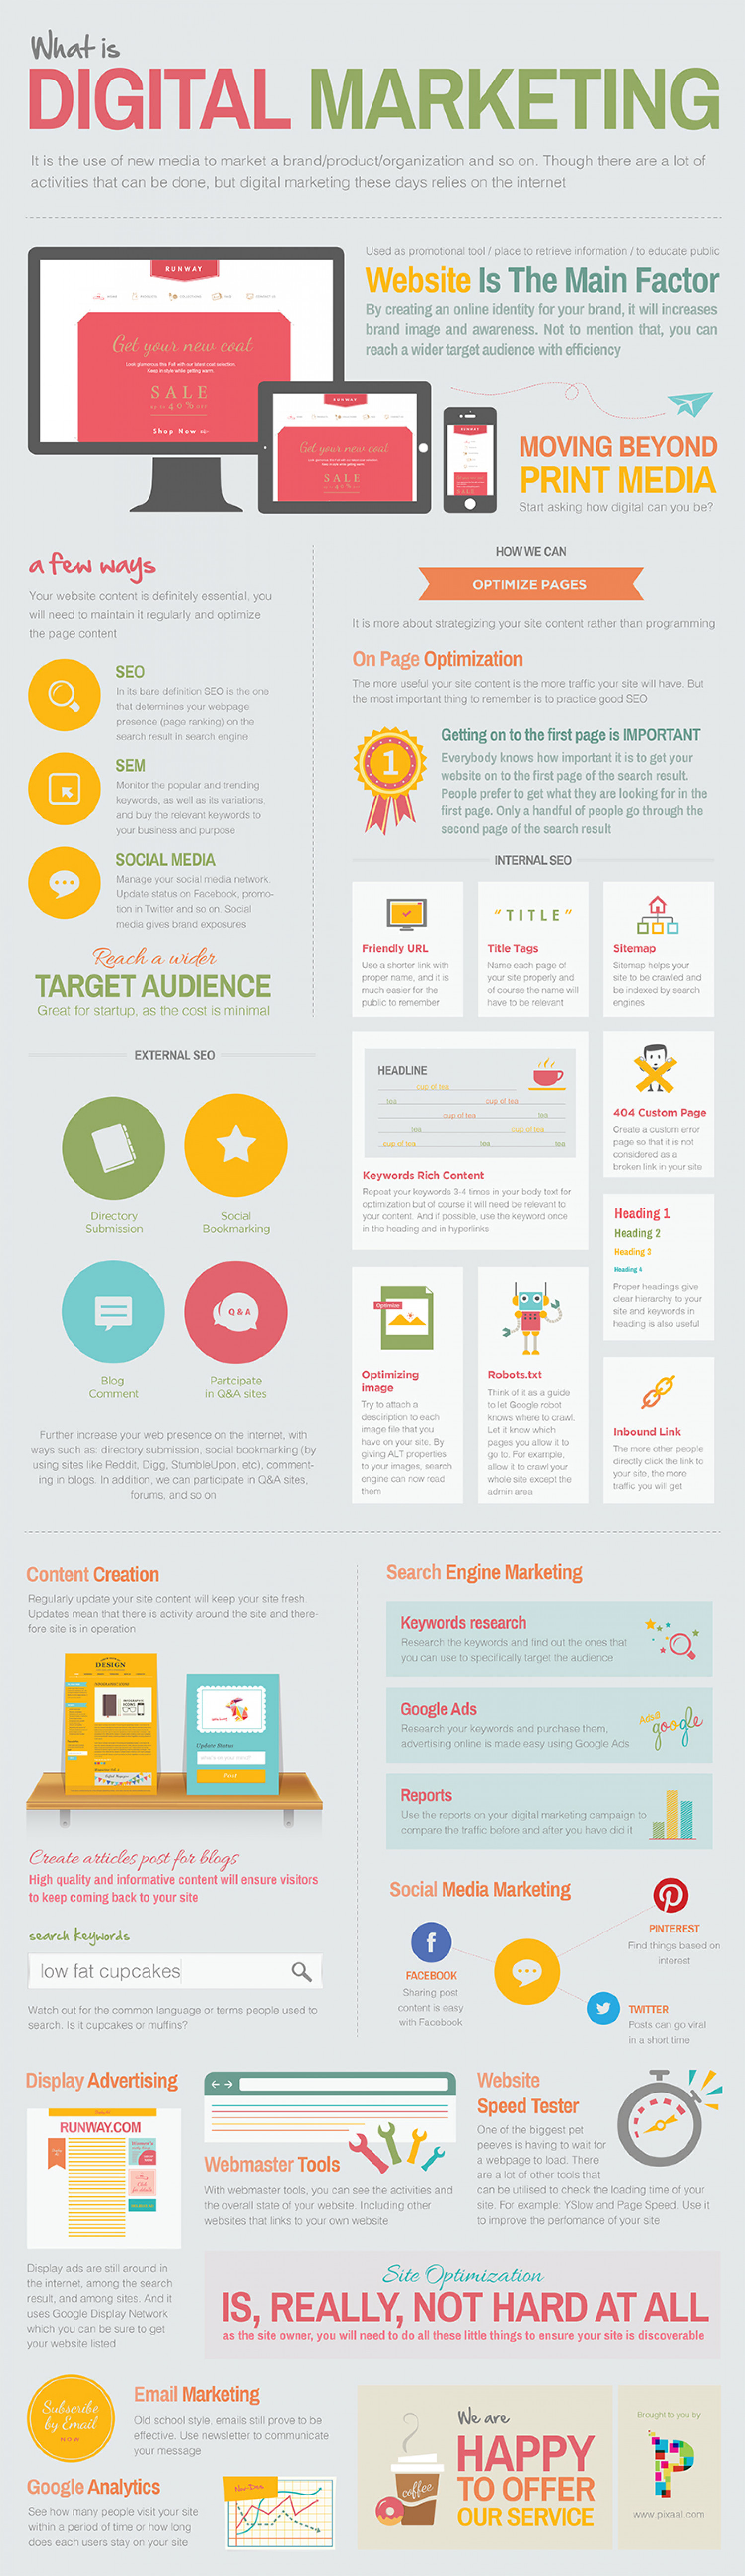 A Simple Guide to Digital Marketing Infographic